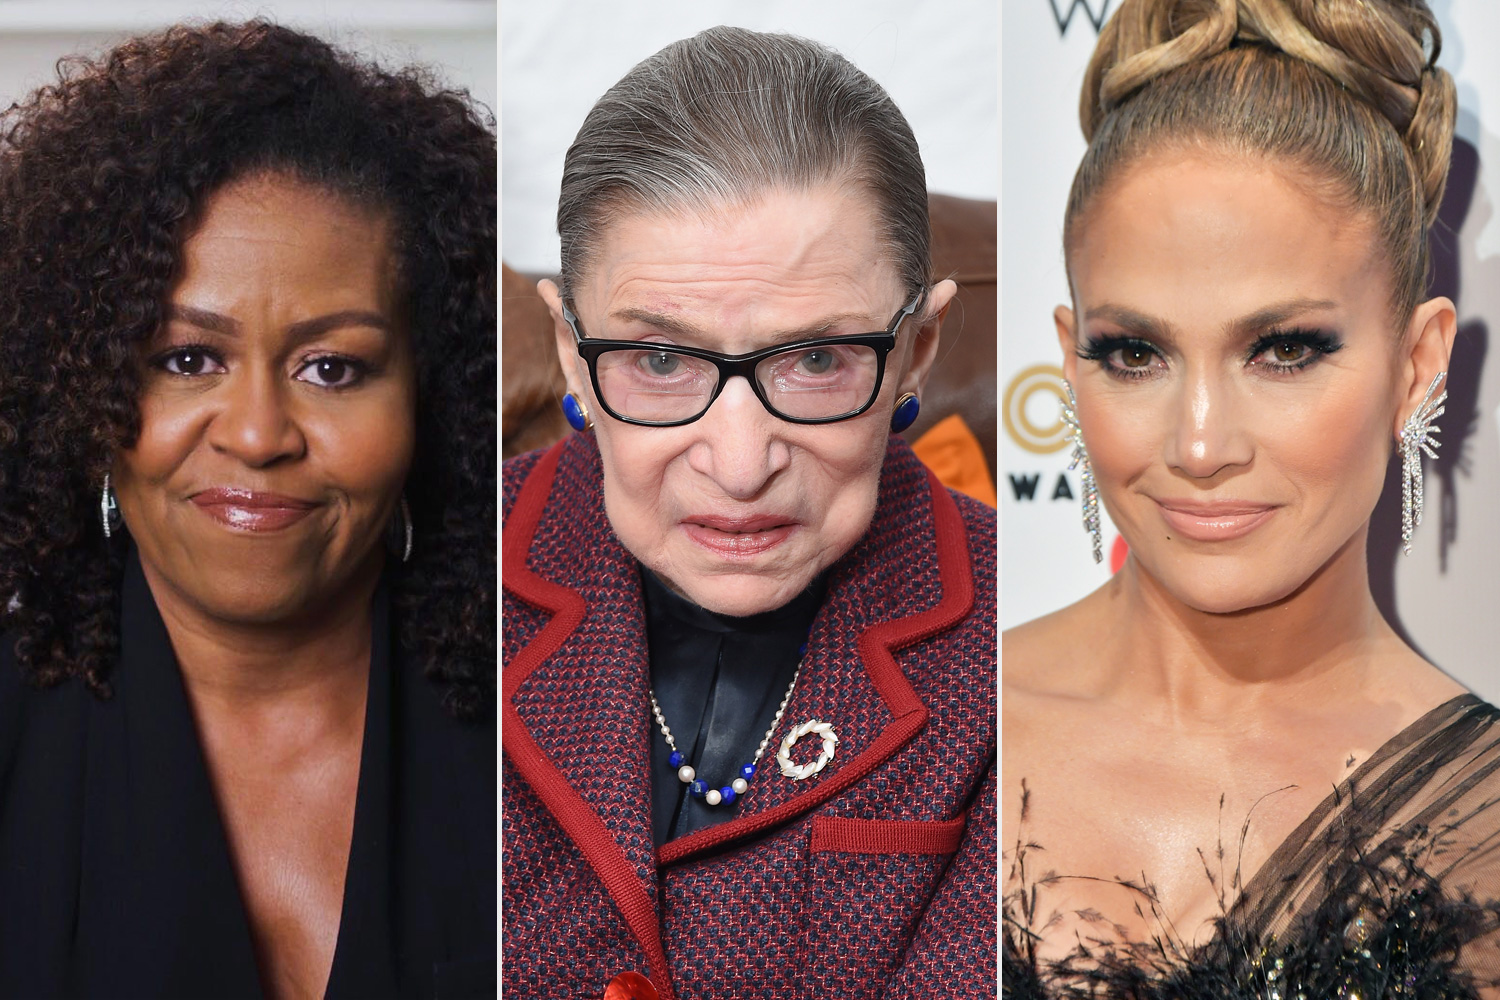 Michelle Obama & Jennifer Lopez Remember 'Friend' Ruth Bader Ginsburg: 'A True Champion'